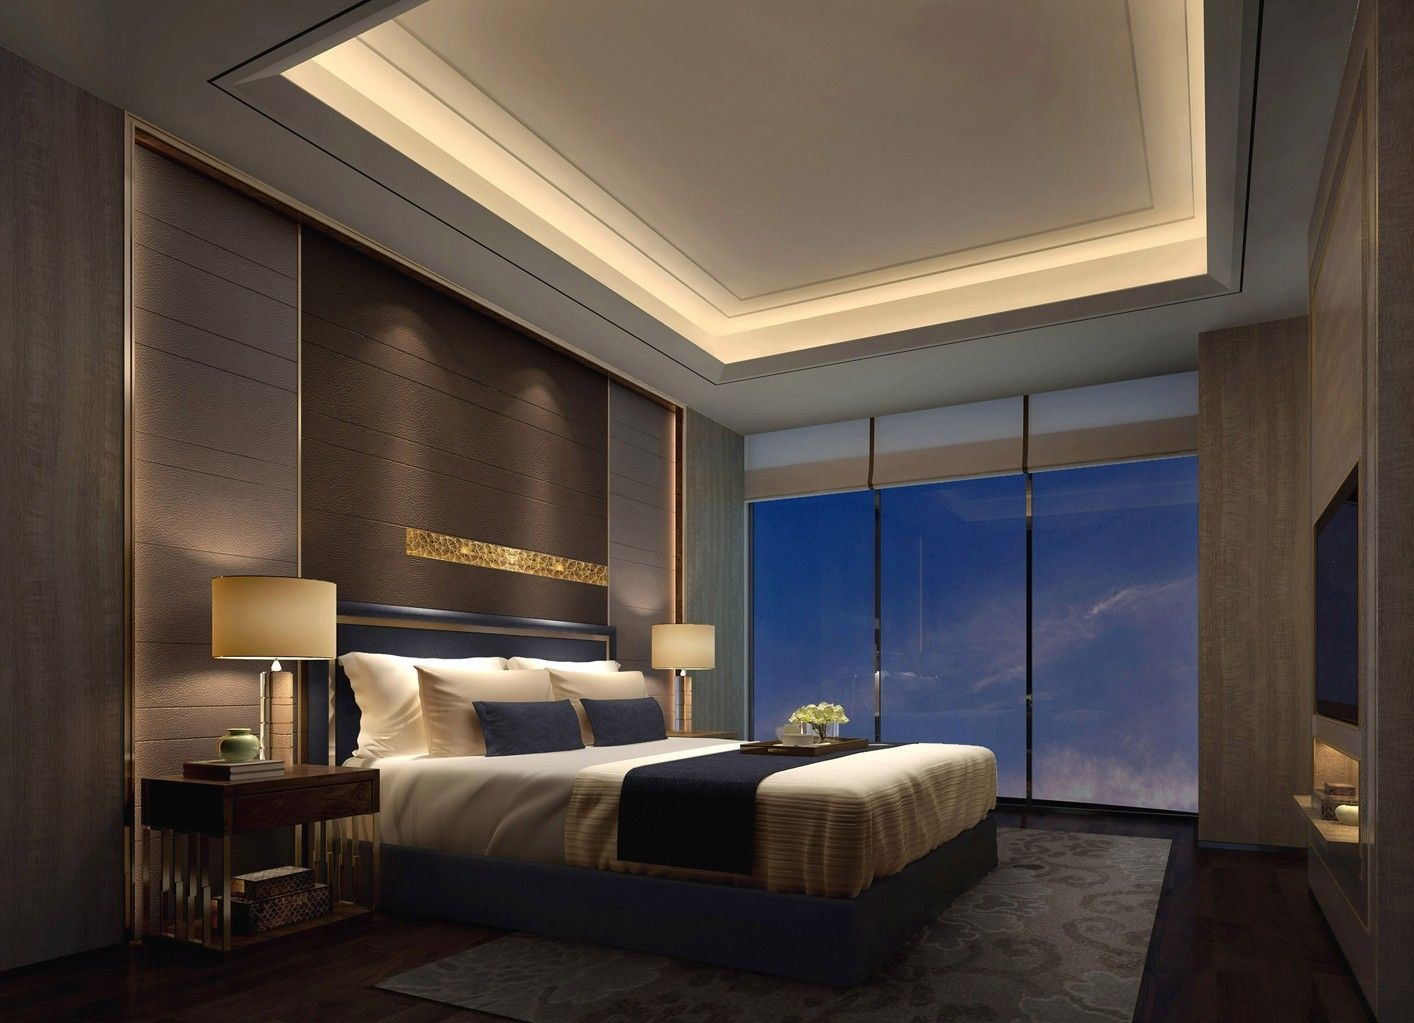 Recessed Master Bedroom Ceiling With Hidden Lights  Remodel Bedroom Ceiling Design Bedroom